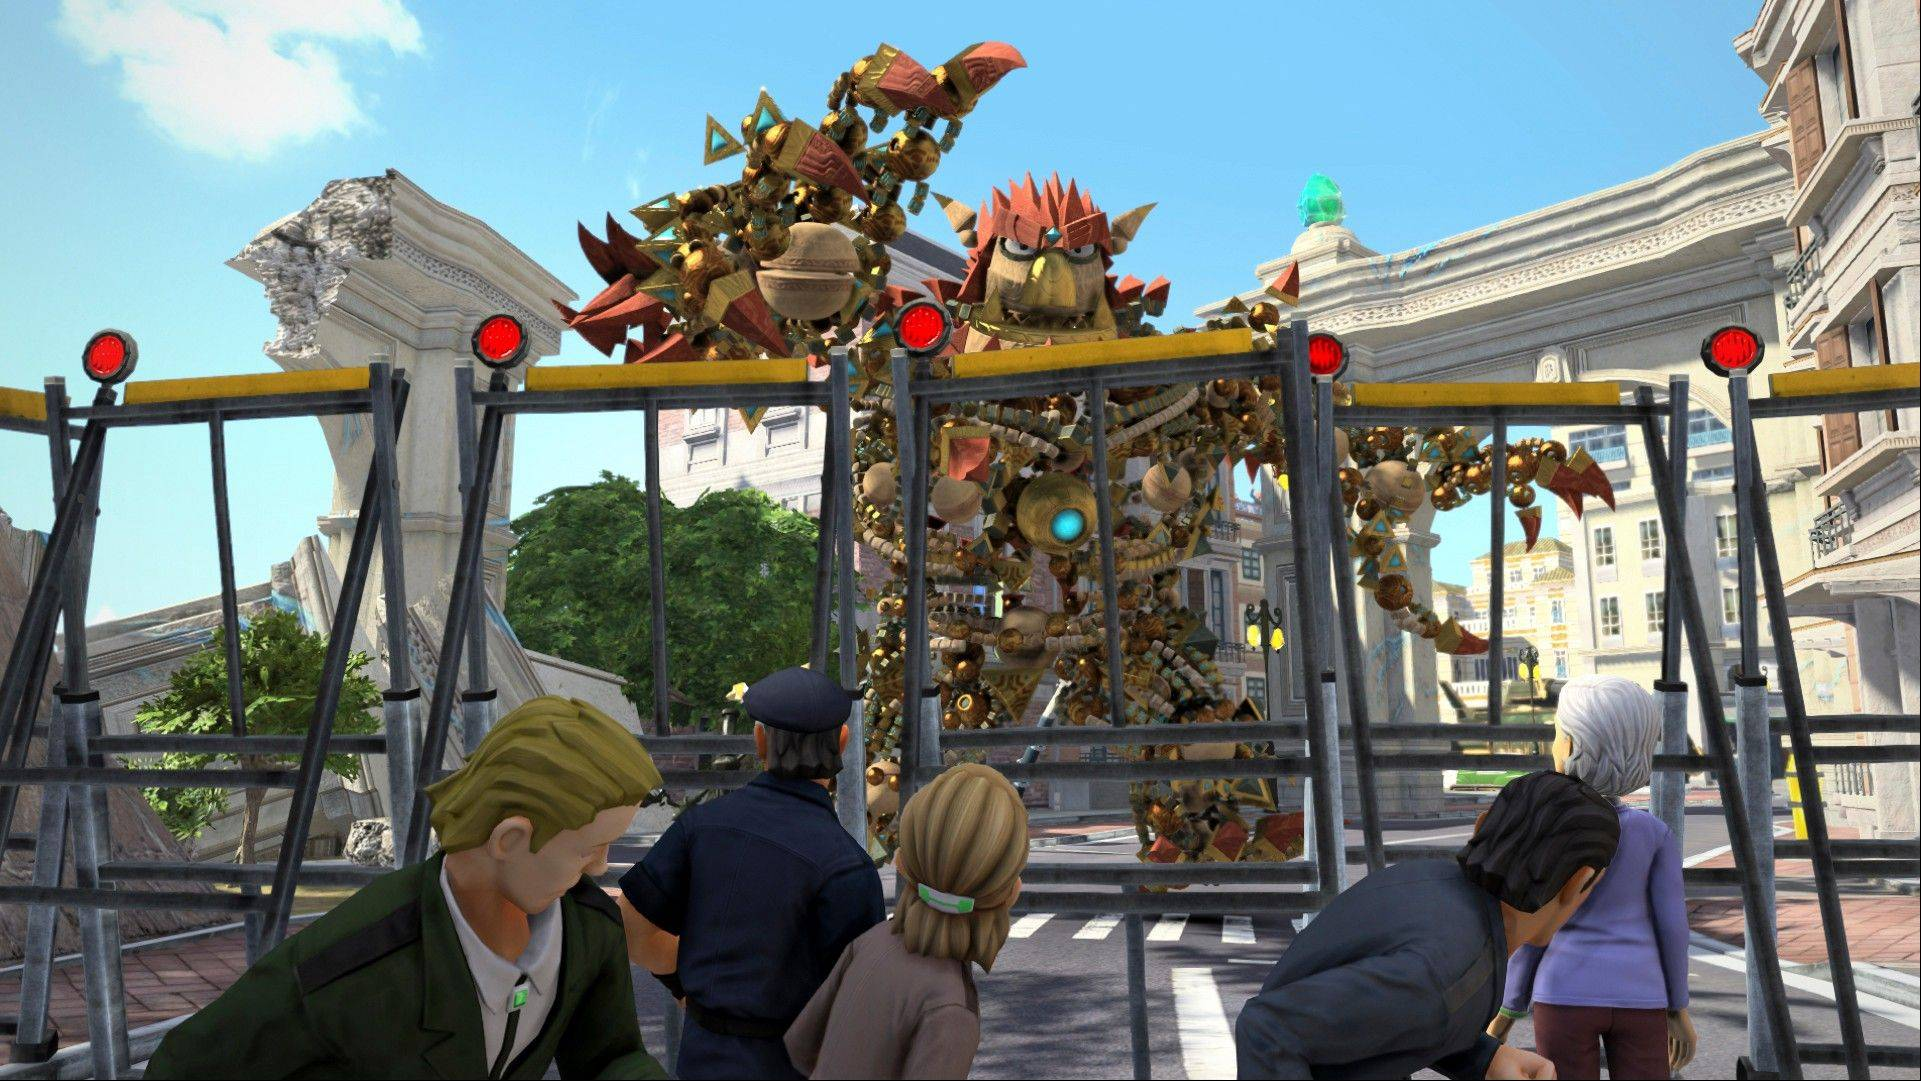 """Knack"" was created to be the perfect beast to show off the spectacularly vamped up visual powers of the PlayStation 4 game console. The hero of the game, also called ""Knack,"" is made up of 5,000 parts that cluster together and hang in the air to shape its ever-metamorphosing form."